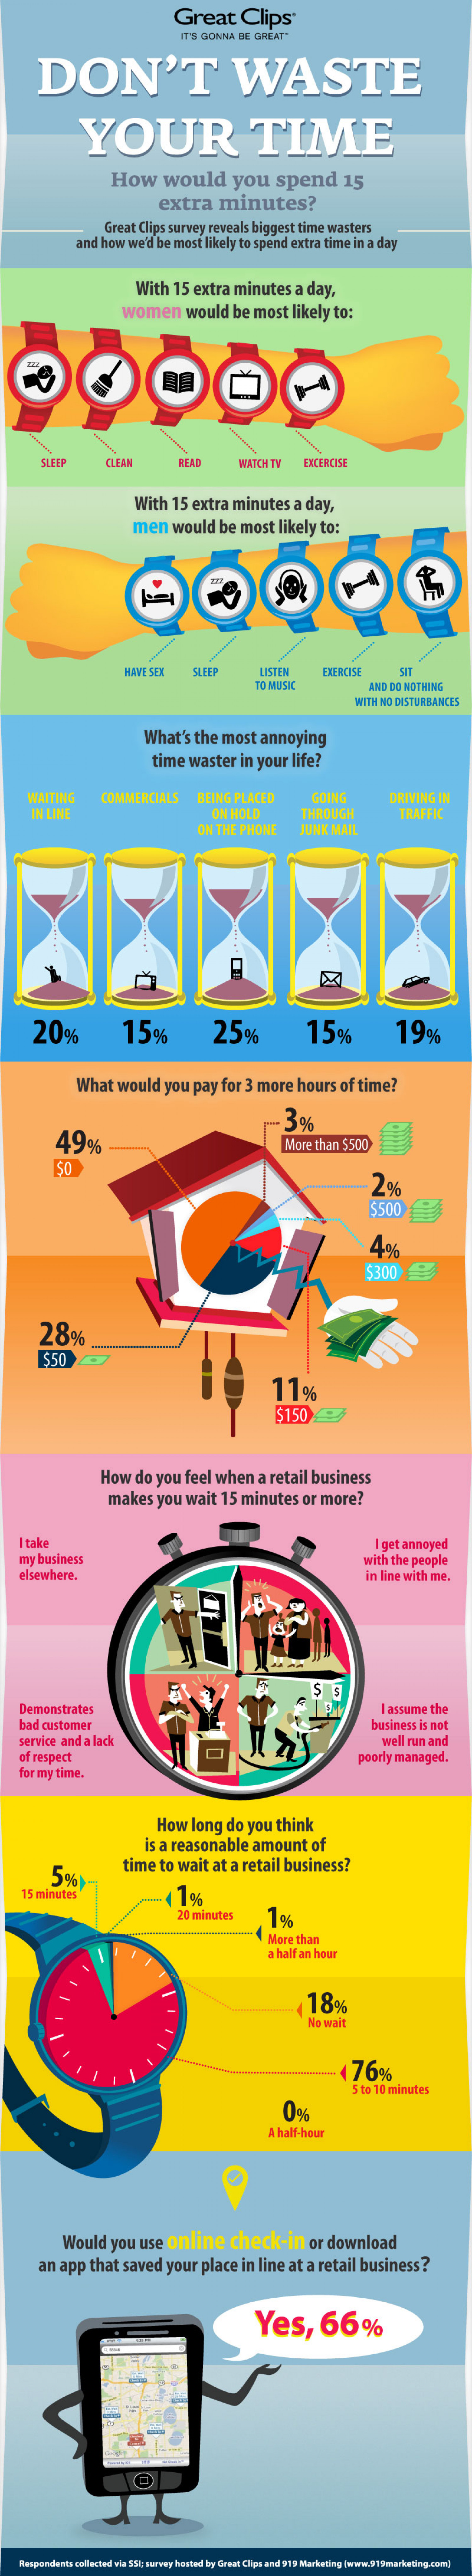 Don't Waste Your Time:  How would you spend 15 extra minutes? Infographic